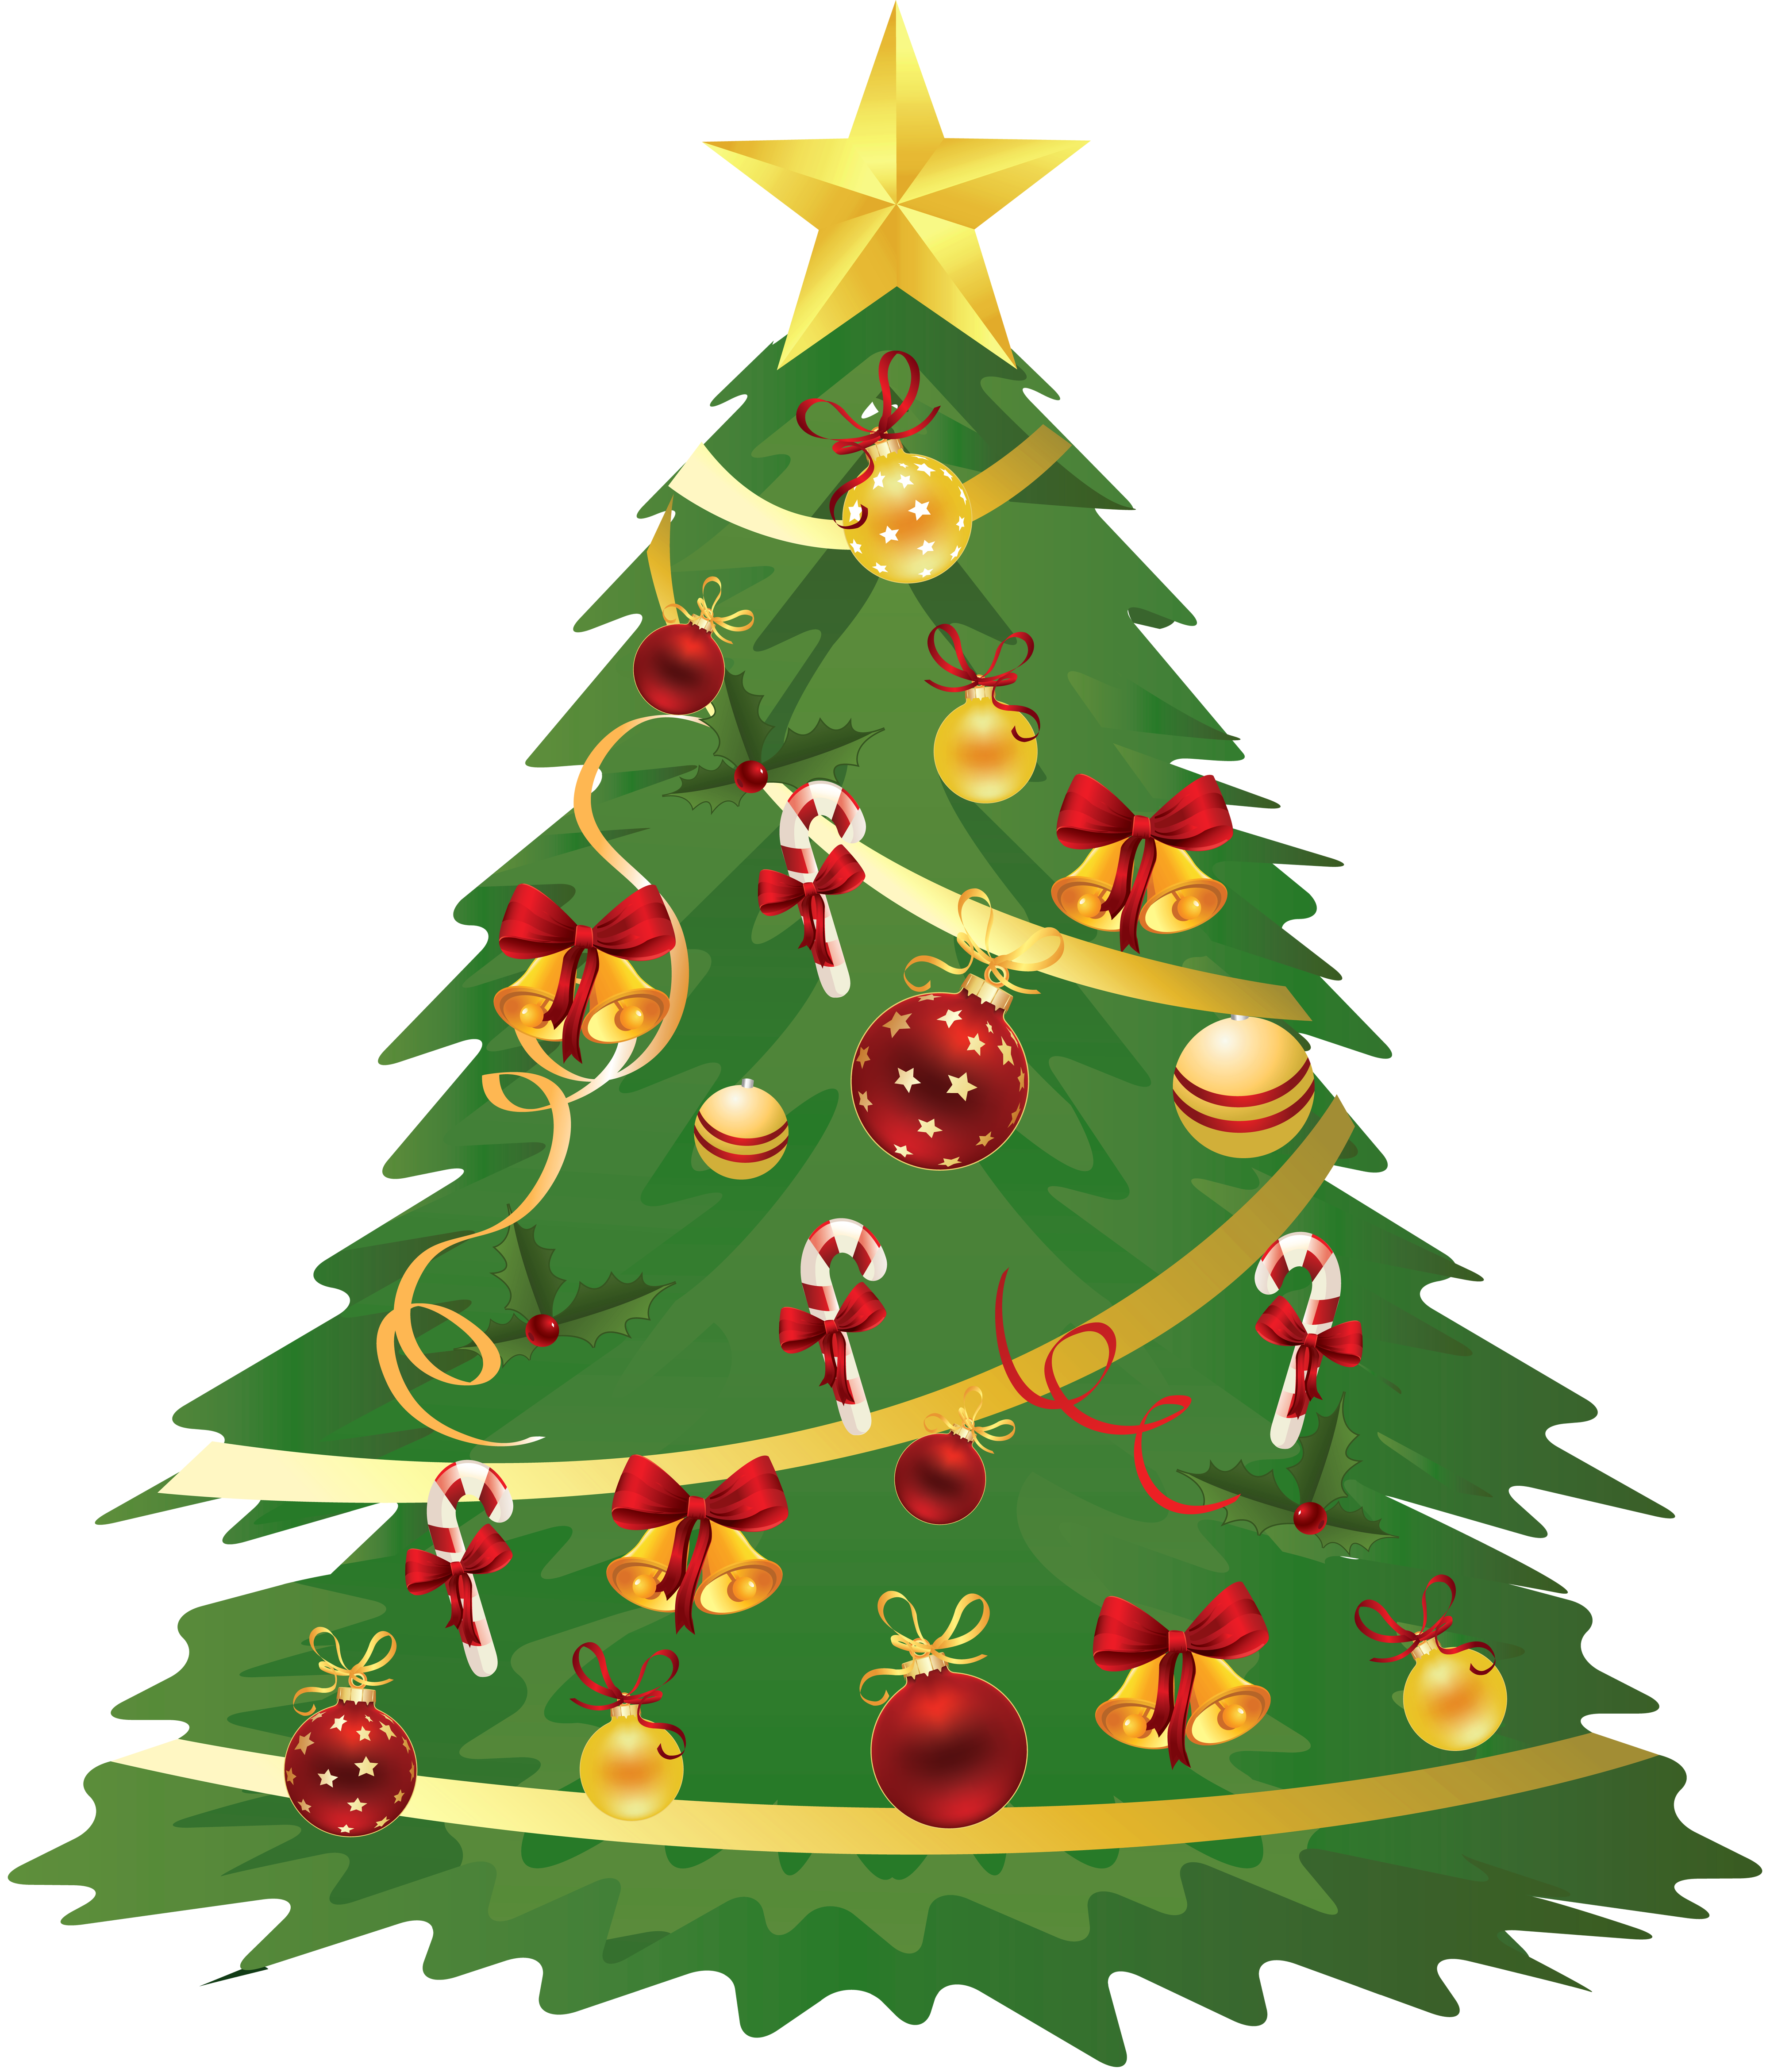 Christmas Tree Ornaments Transparent image #35271